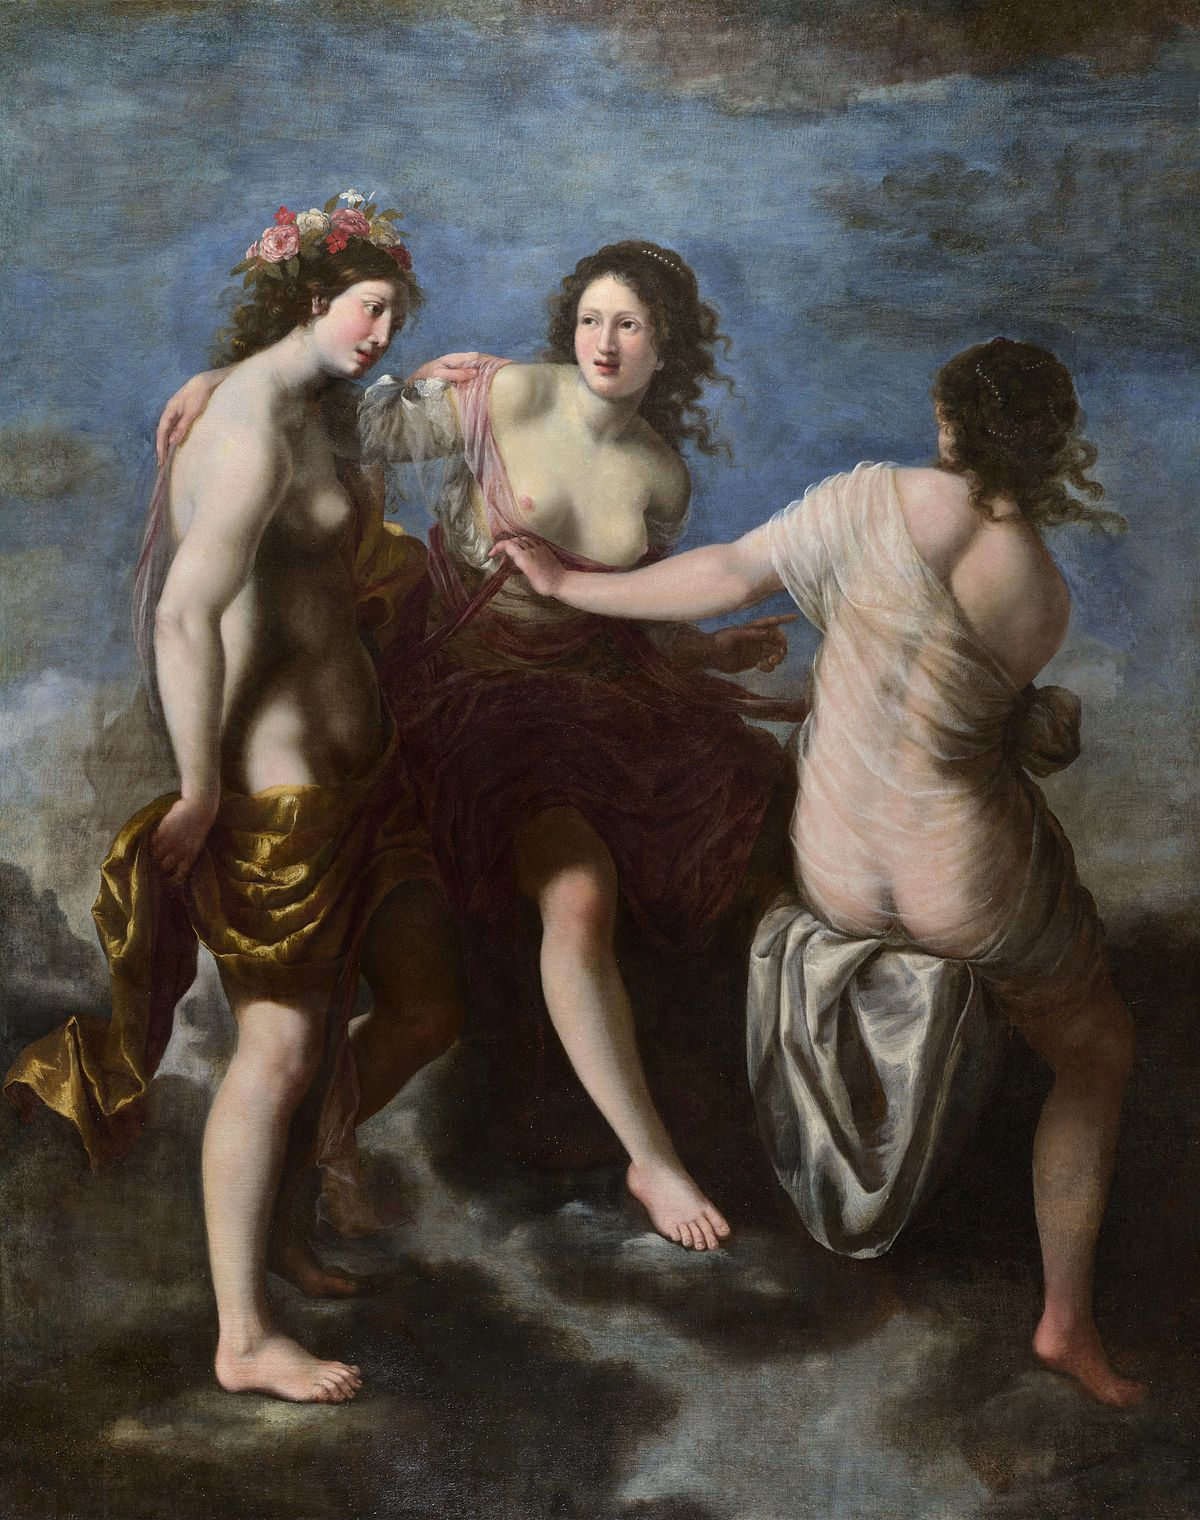 http://upload.wikimedia.org/wikipedia/commons/thumb/d/d5/The_Three_Graces_by_Francesco_Furini_%281638%29.jpg/1200px-The_Three_Graces_by_Francesco_Furini_%281638%29.jpg